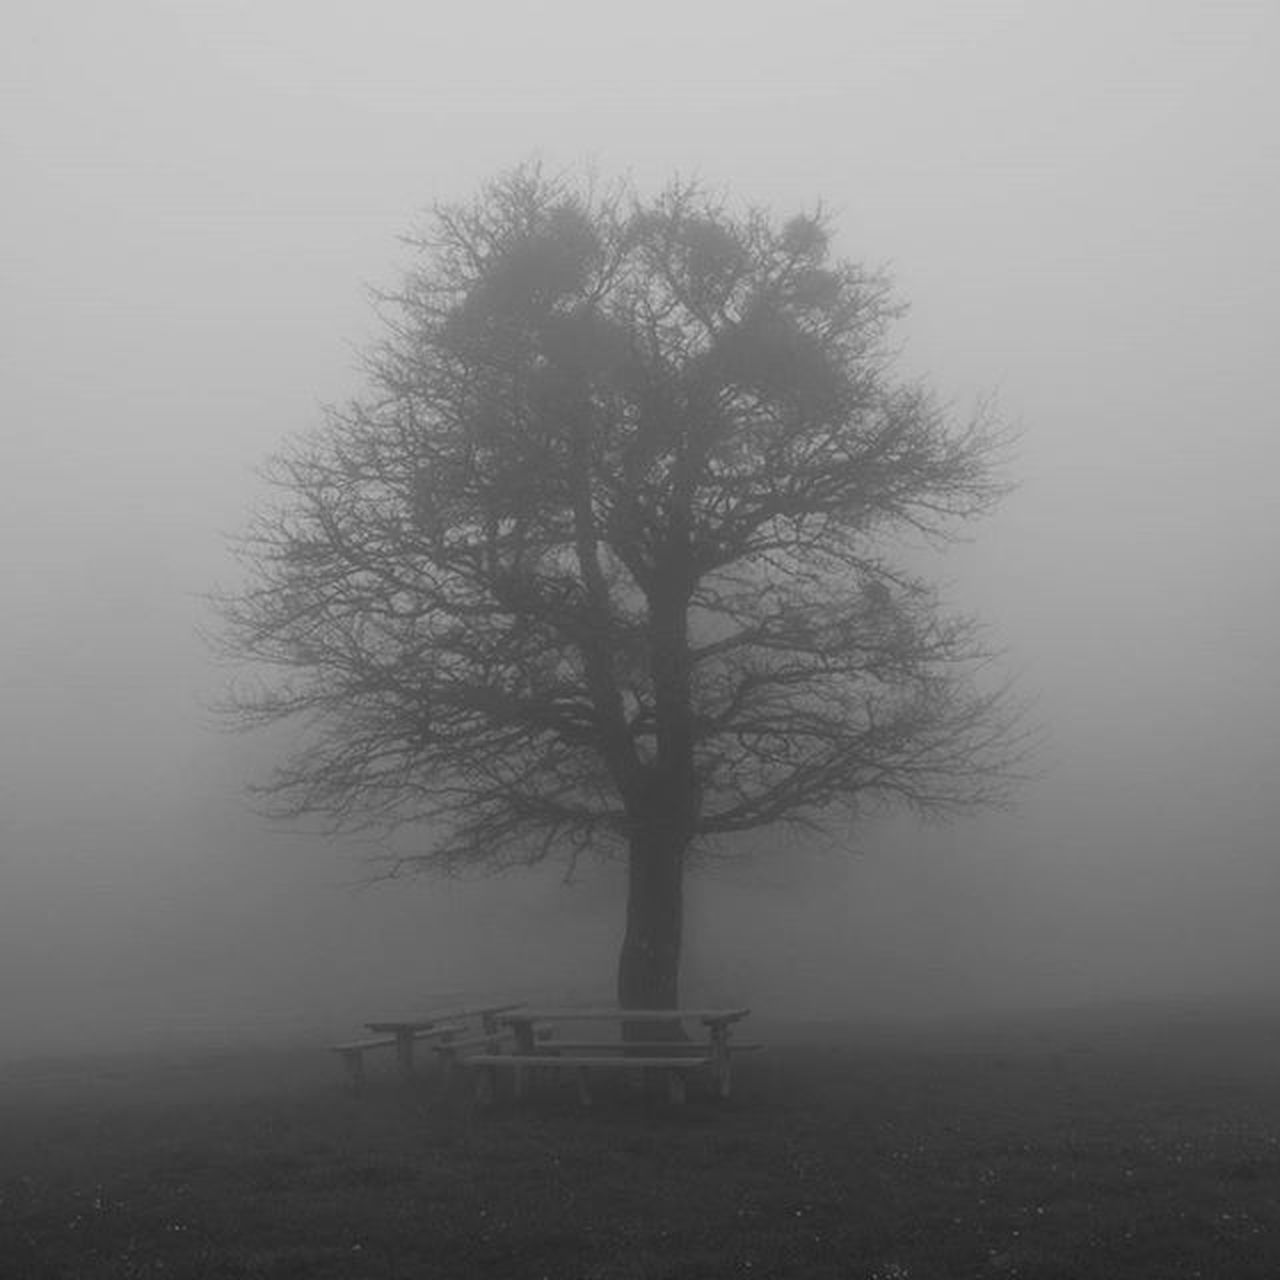 tree, landscape, fog, isolated, tranquility, lone, solitude, bare tree, tranquil scene, tree trunk, nature, branch, beauty in nature, outdoors, no people, hazy, day, sky